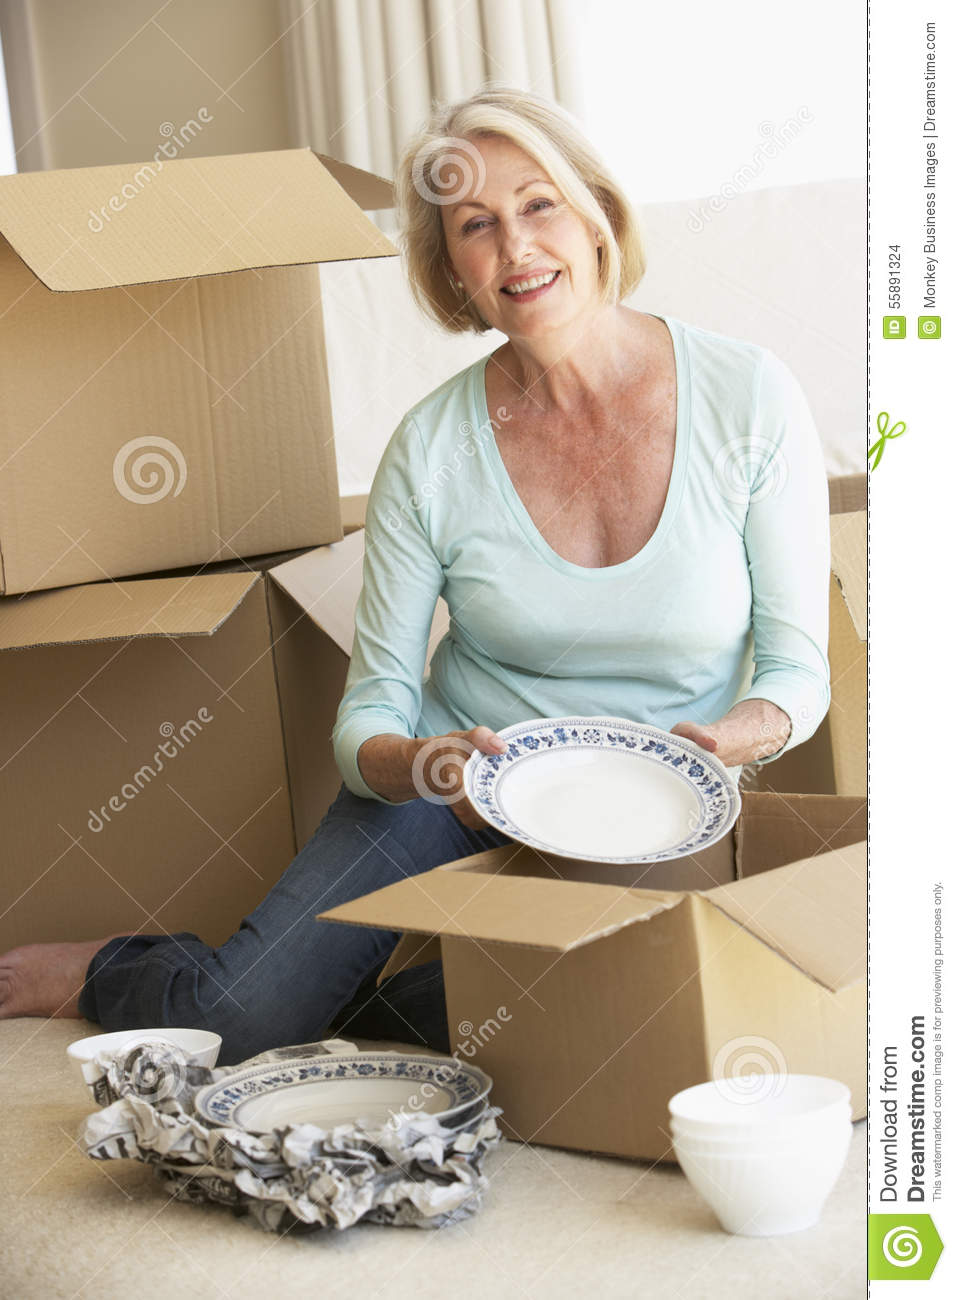 Senior Woman Moving Home And Packing Boxes Stock Photo